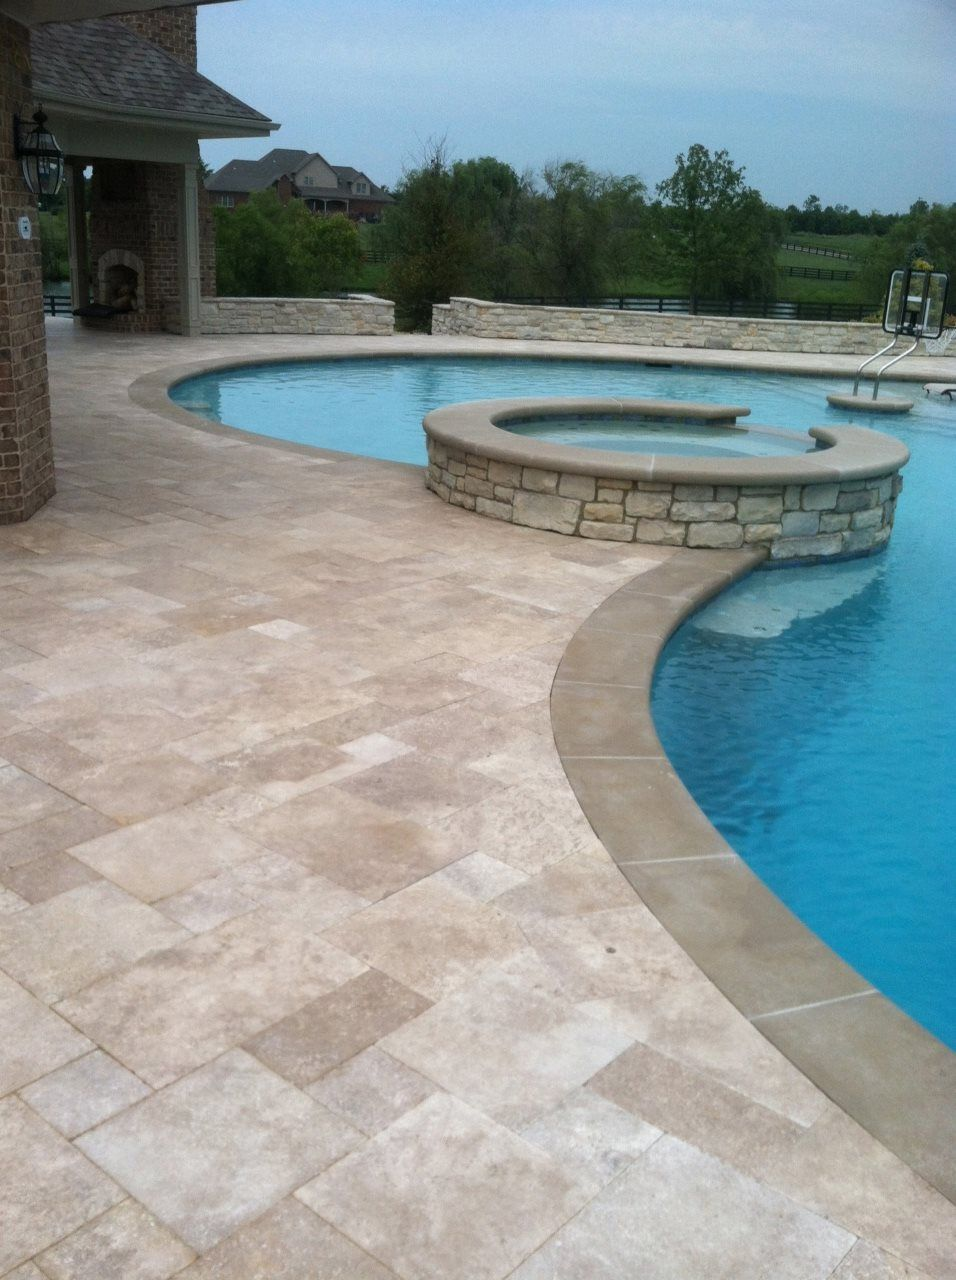 Travertine pool pavers pools patio pinterest pool for Best pavers for pool deck